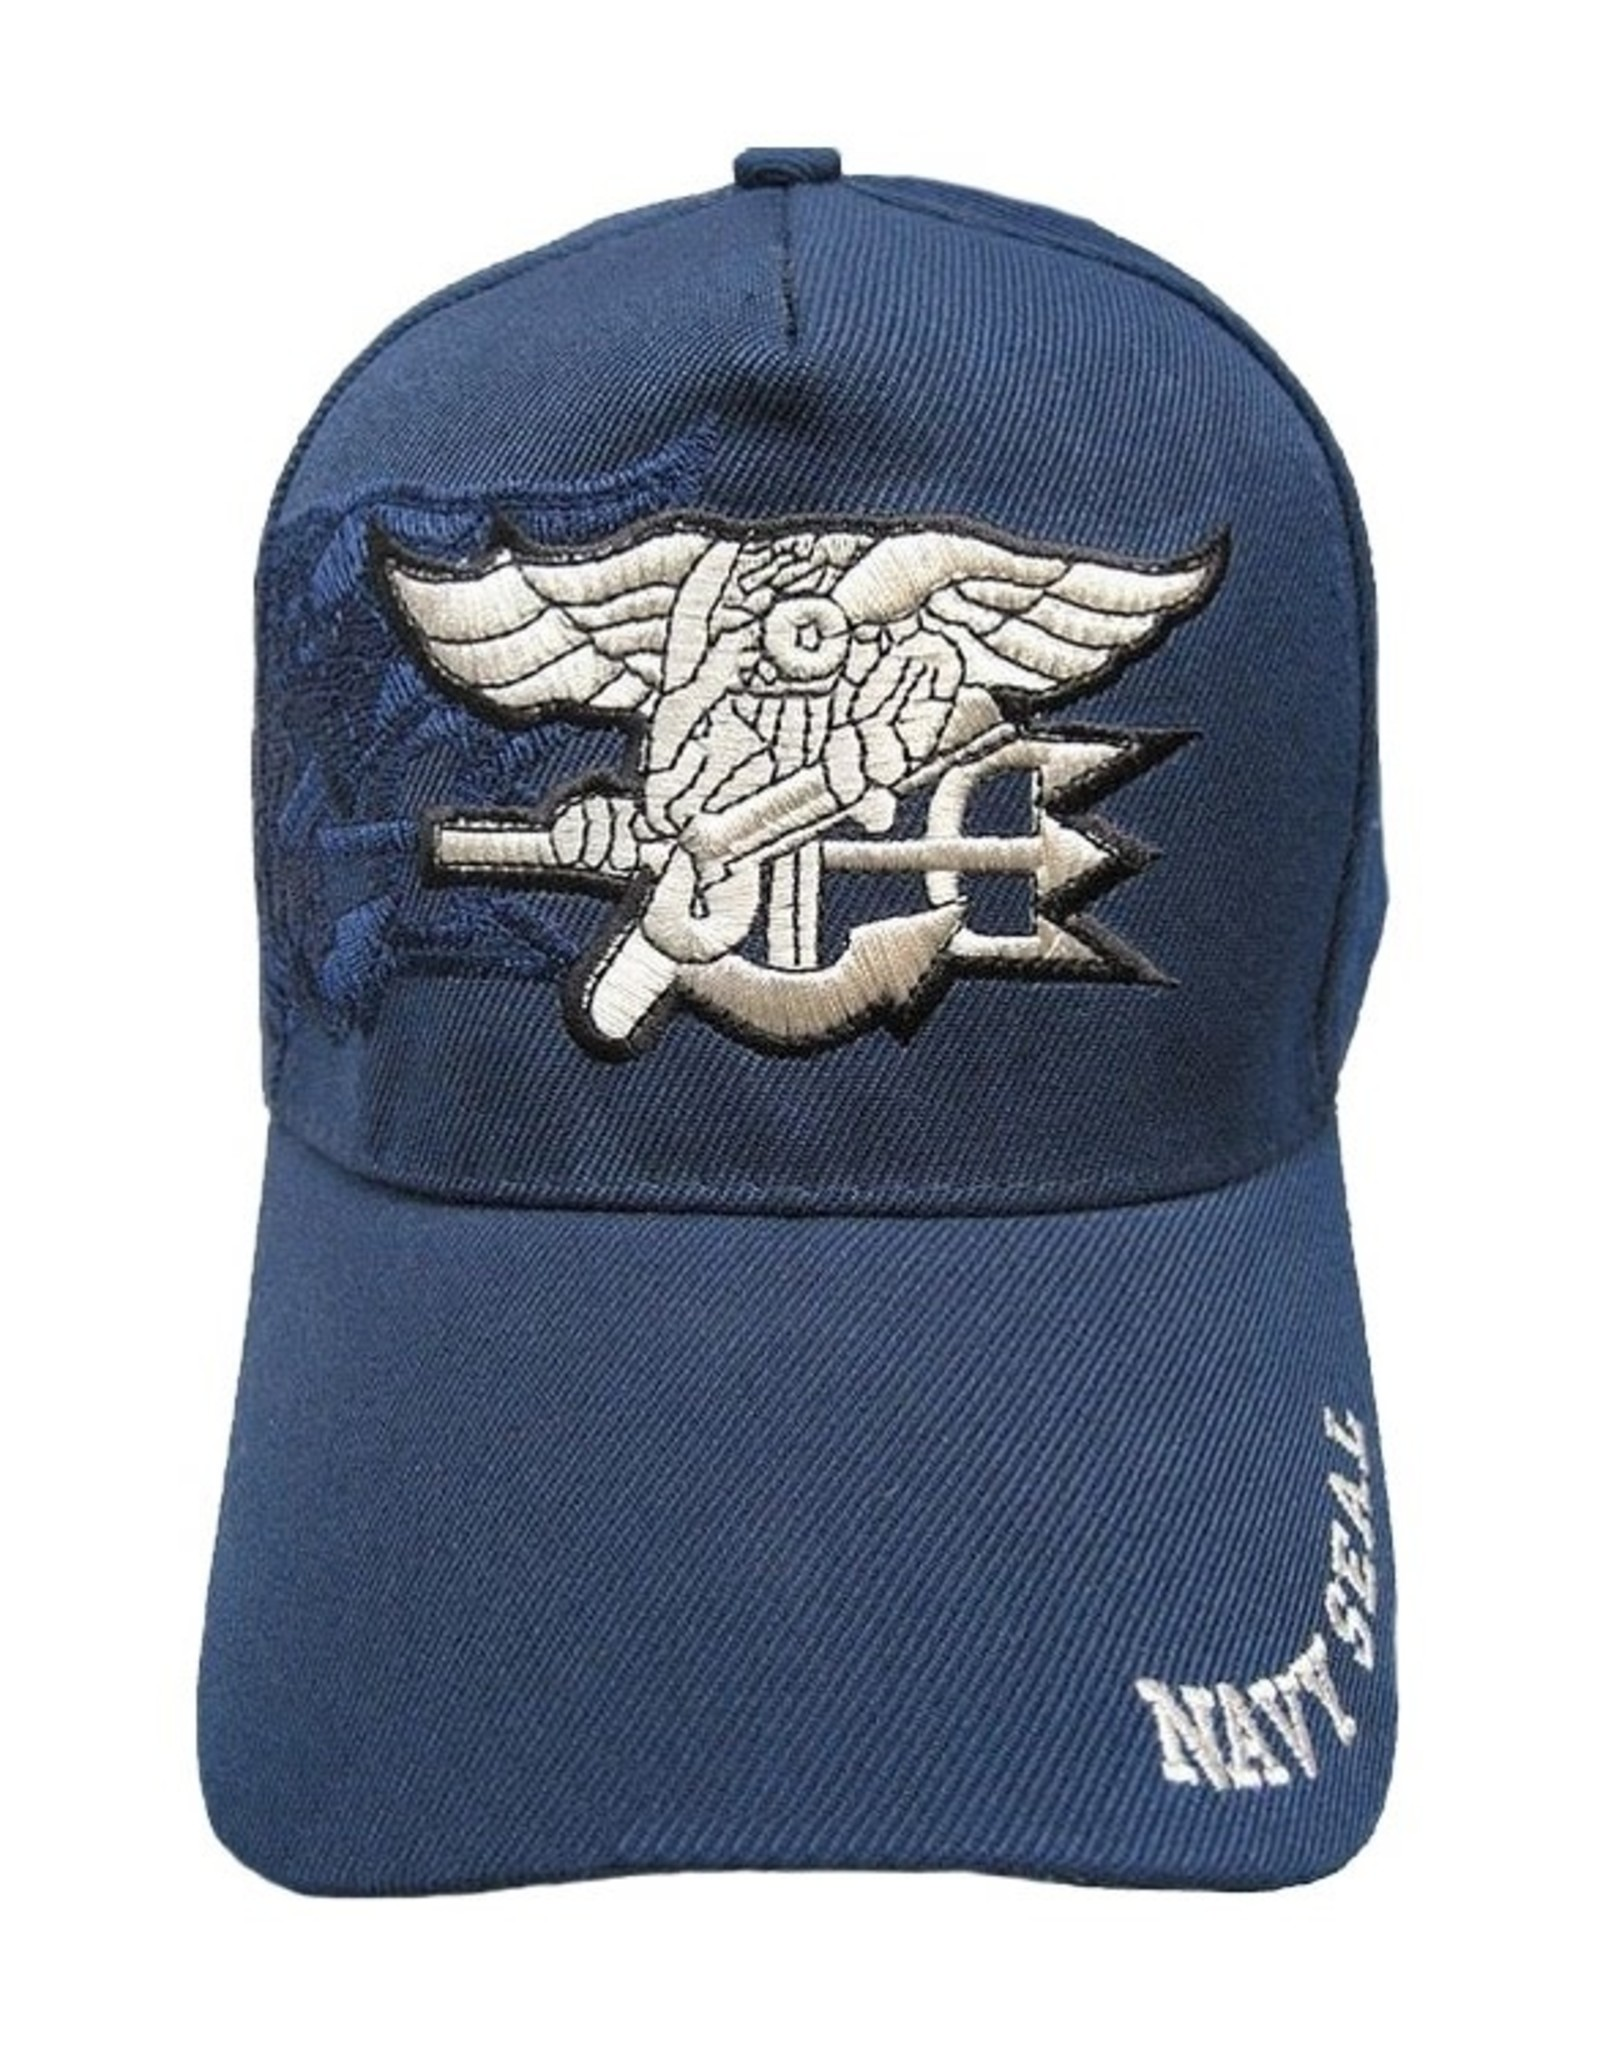 MidMil Navy Seals Hat with Trident Emblem and Shadow Royal Blue